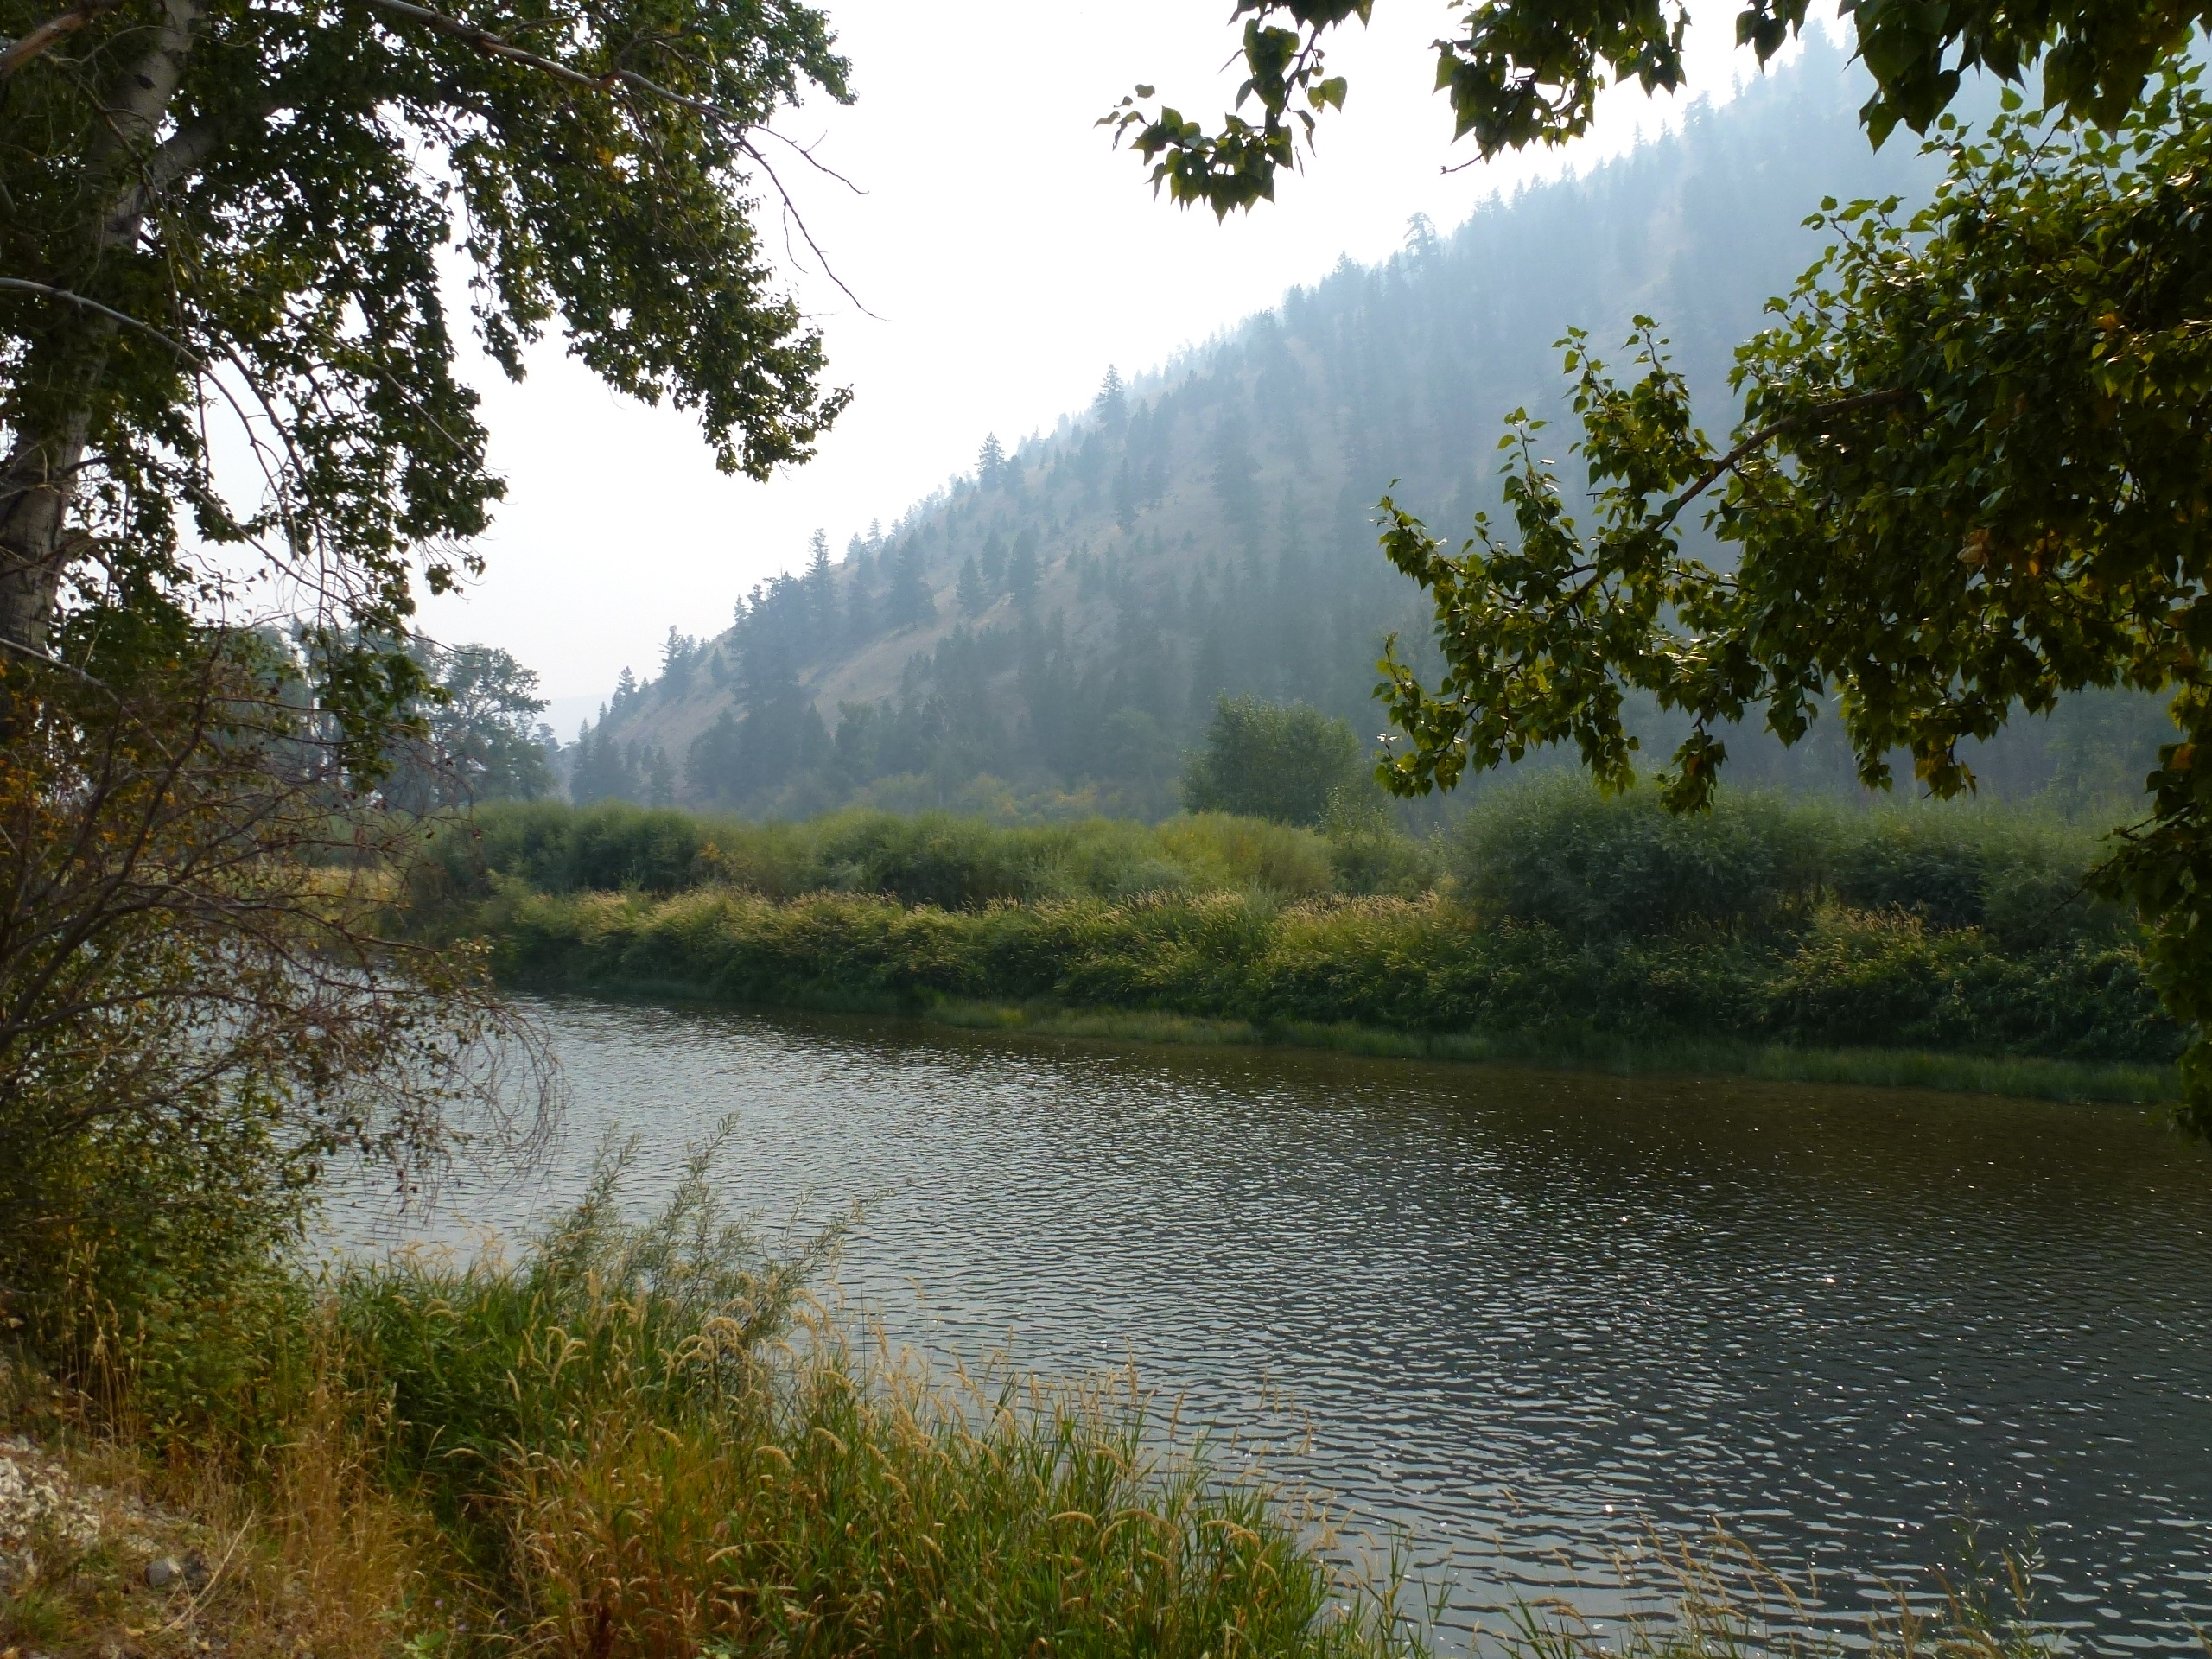 View South of Lewis and Clark Marker, the Salmon River